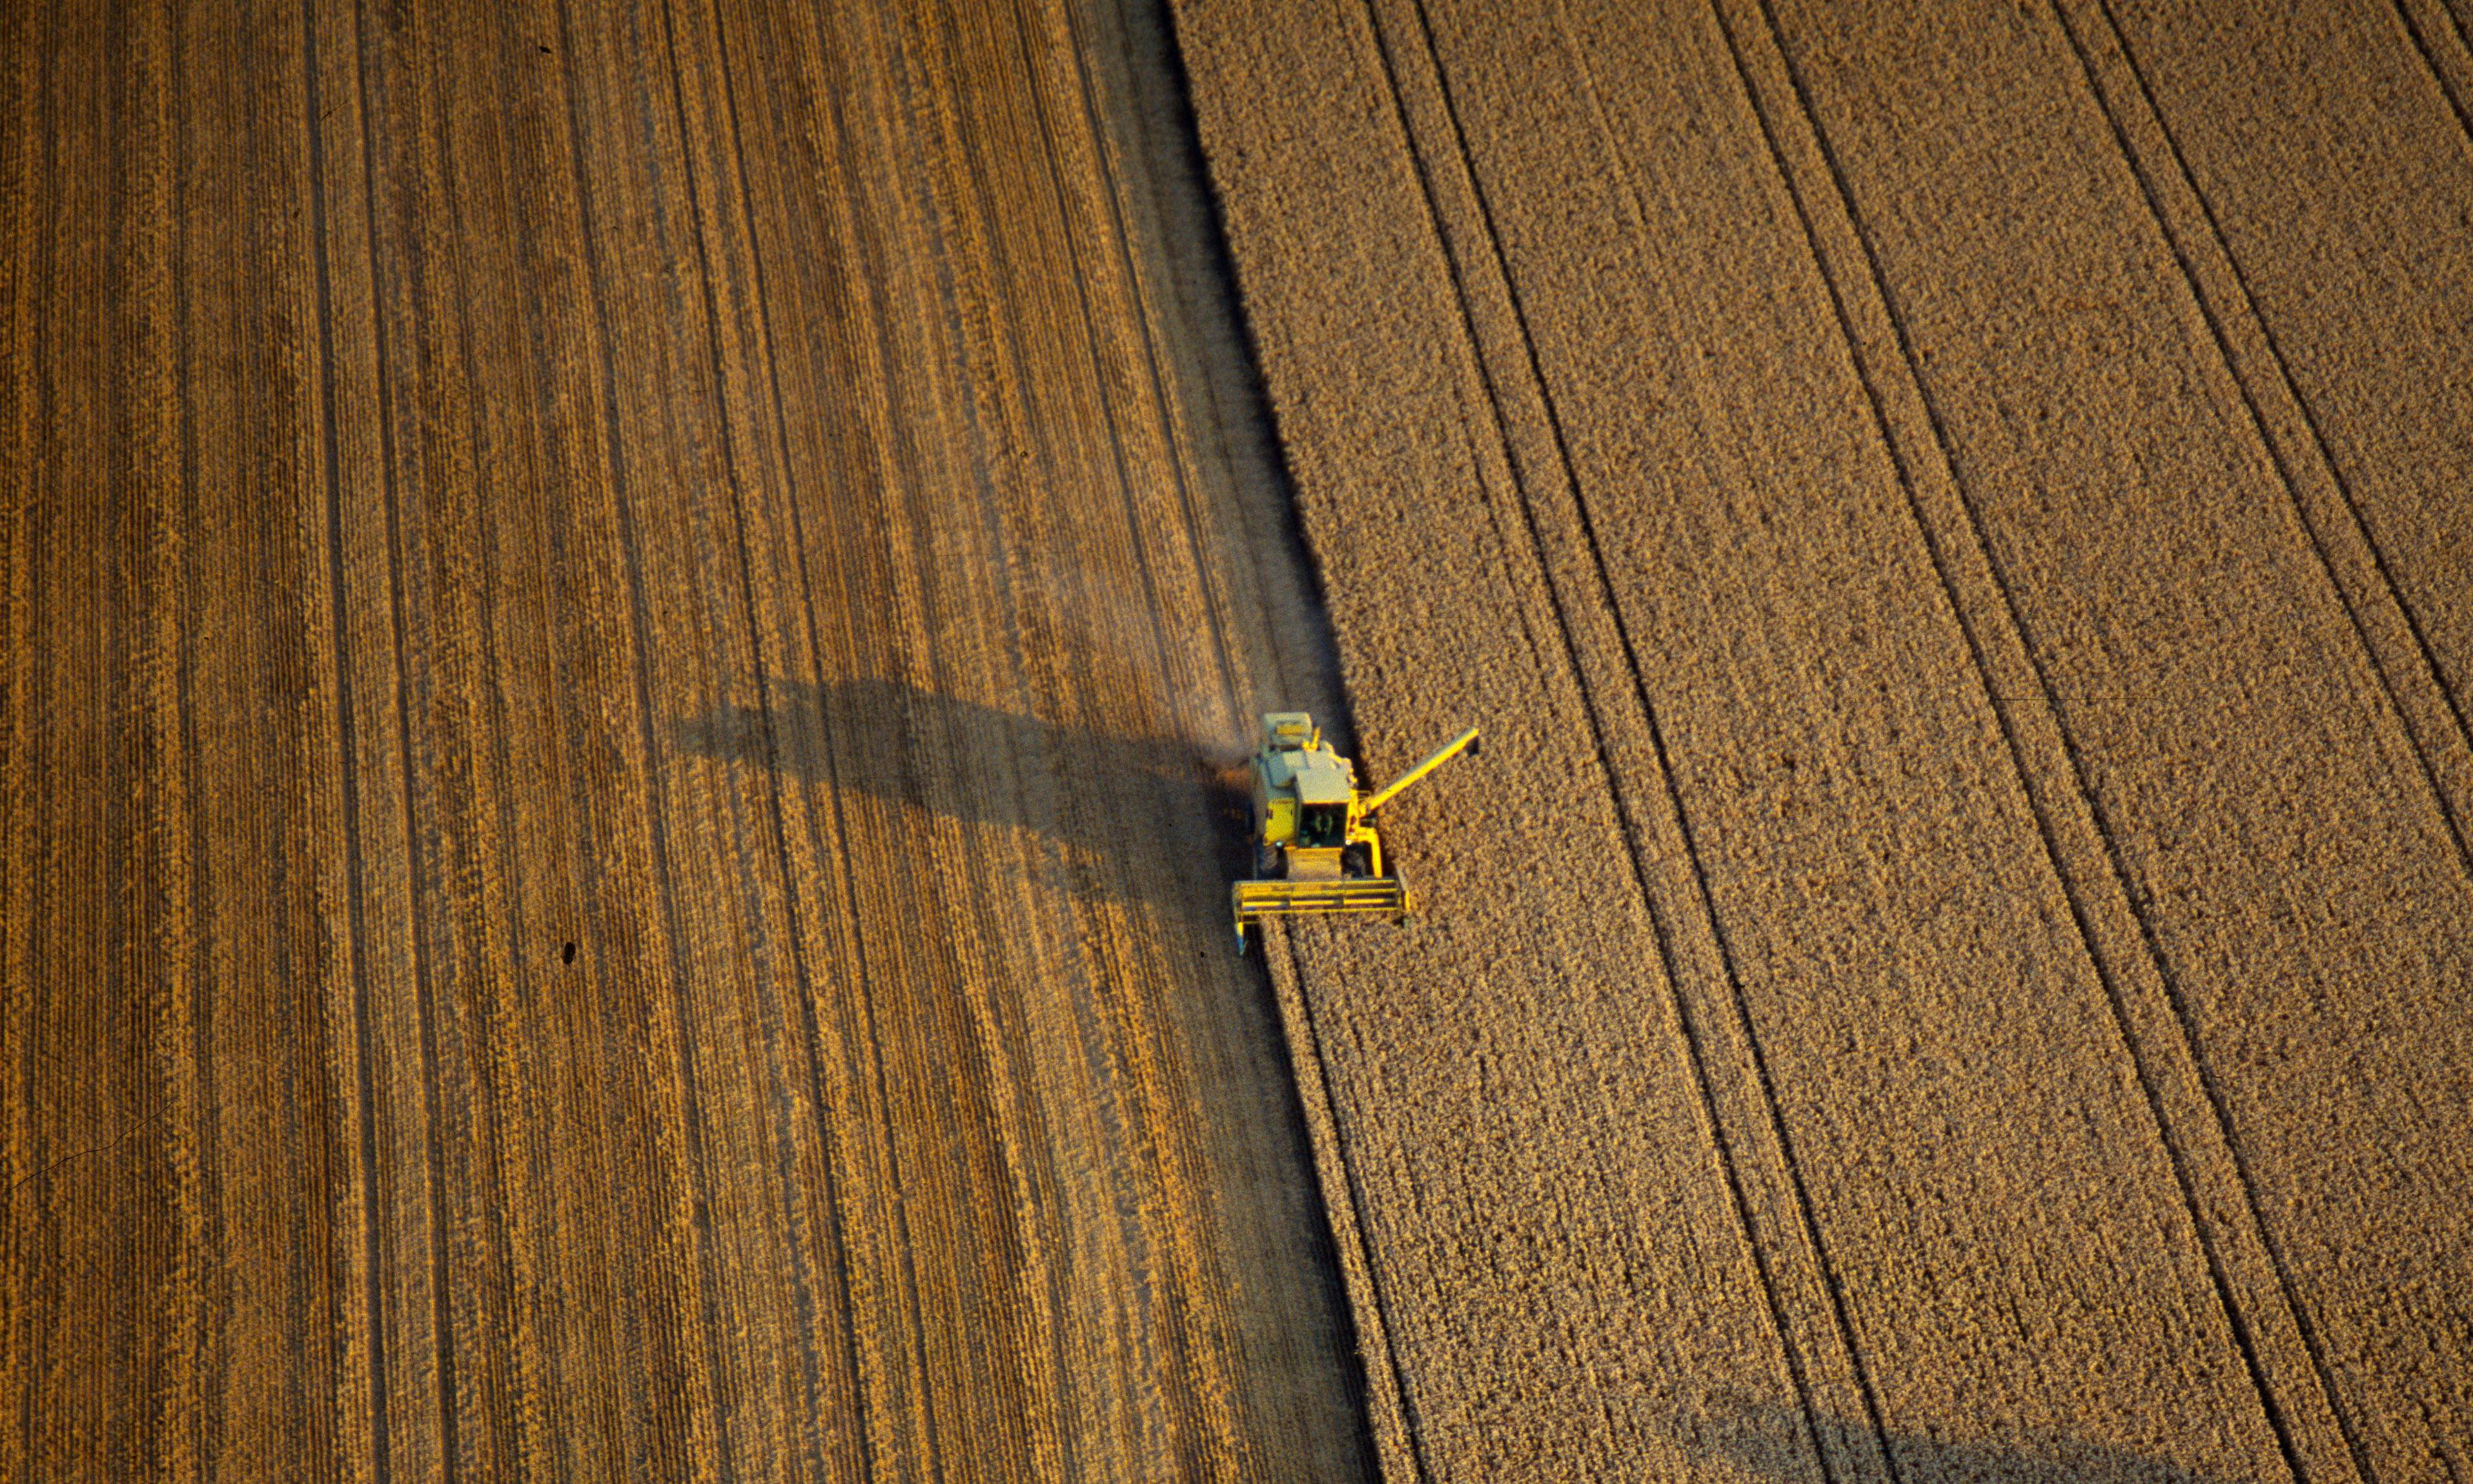 Food security plan after Brexit: biggest shake-up to farming in 40 years